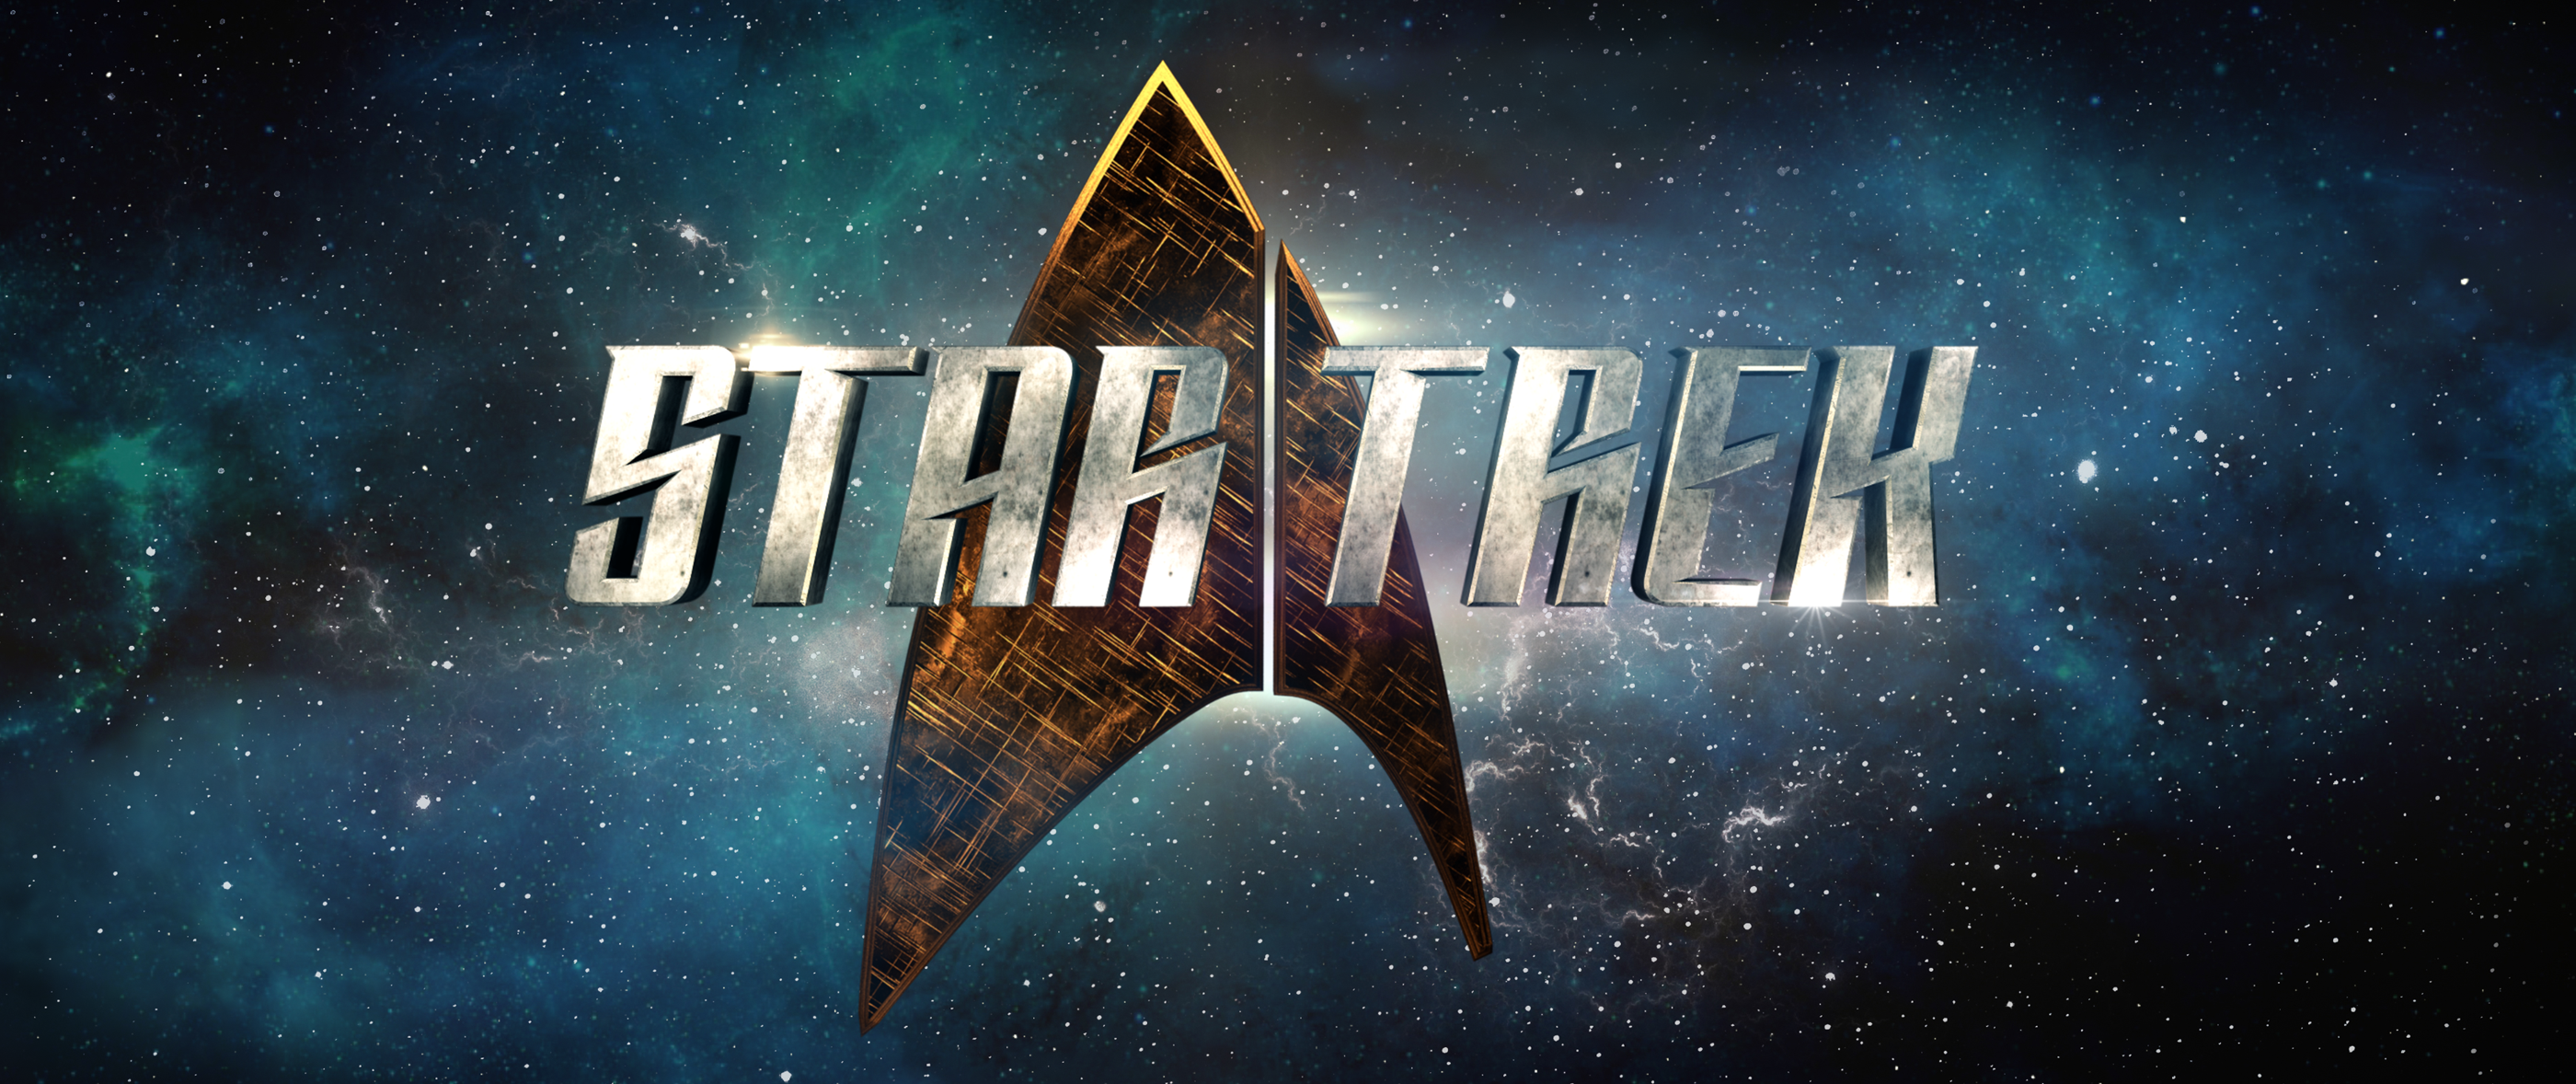 Watch: 'Star Trek' Series Teaser